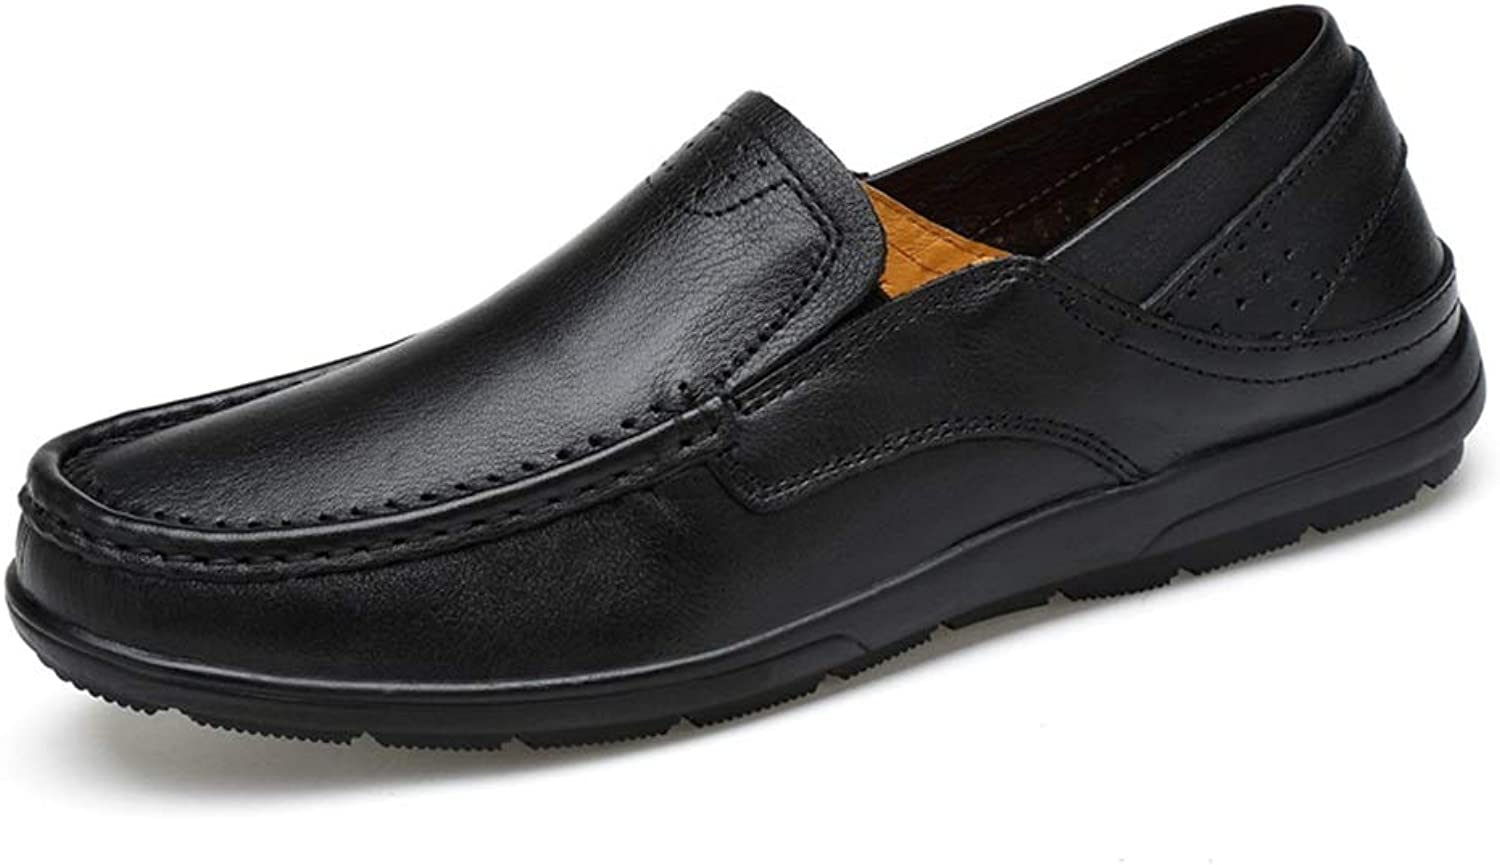 Lvjuzhuangshieur Men's OX Leather Driving Loafers Boat Moccasins Slip-on Style Lightweight Flexible